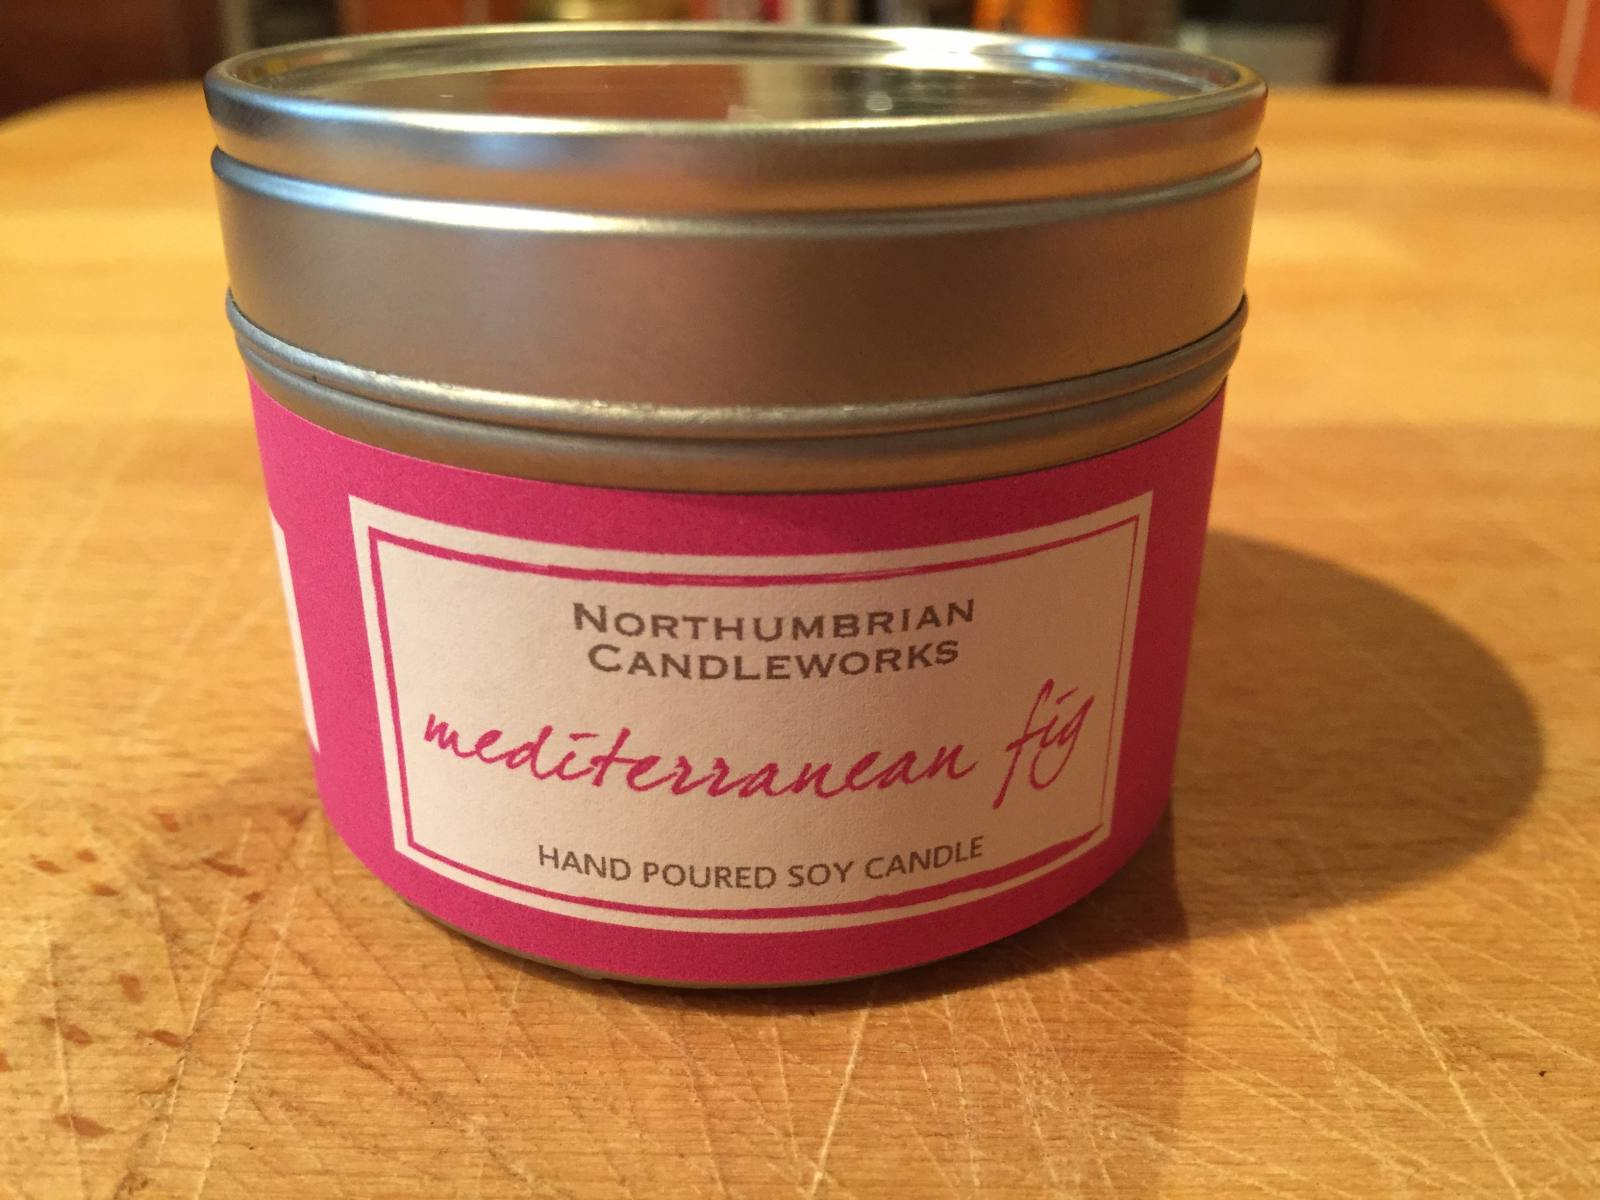 northumbrian candleworks candle making kit tin